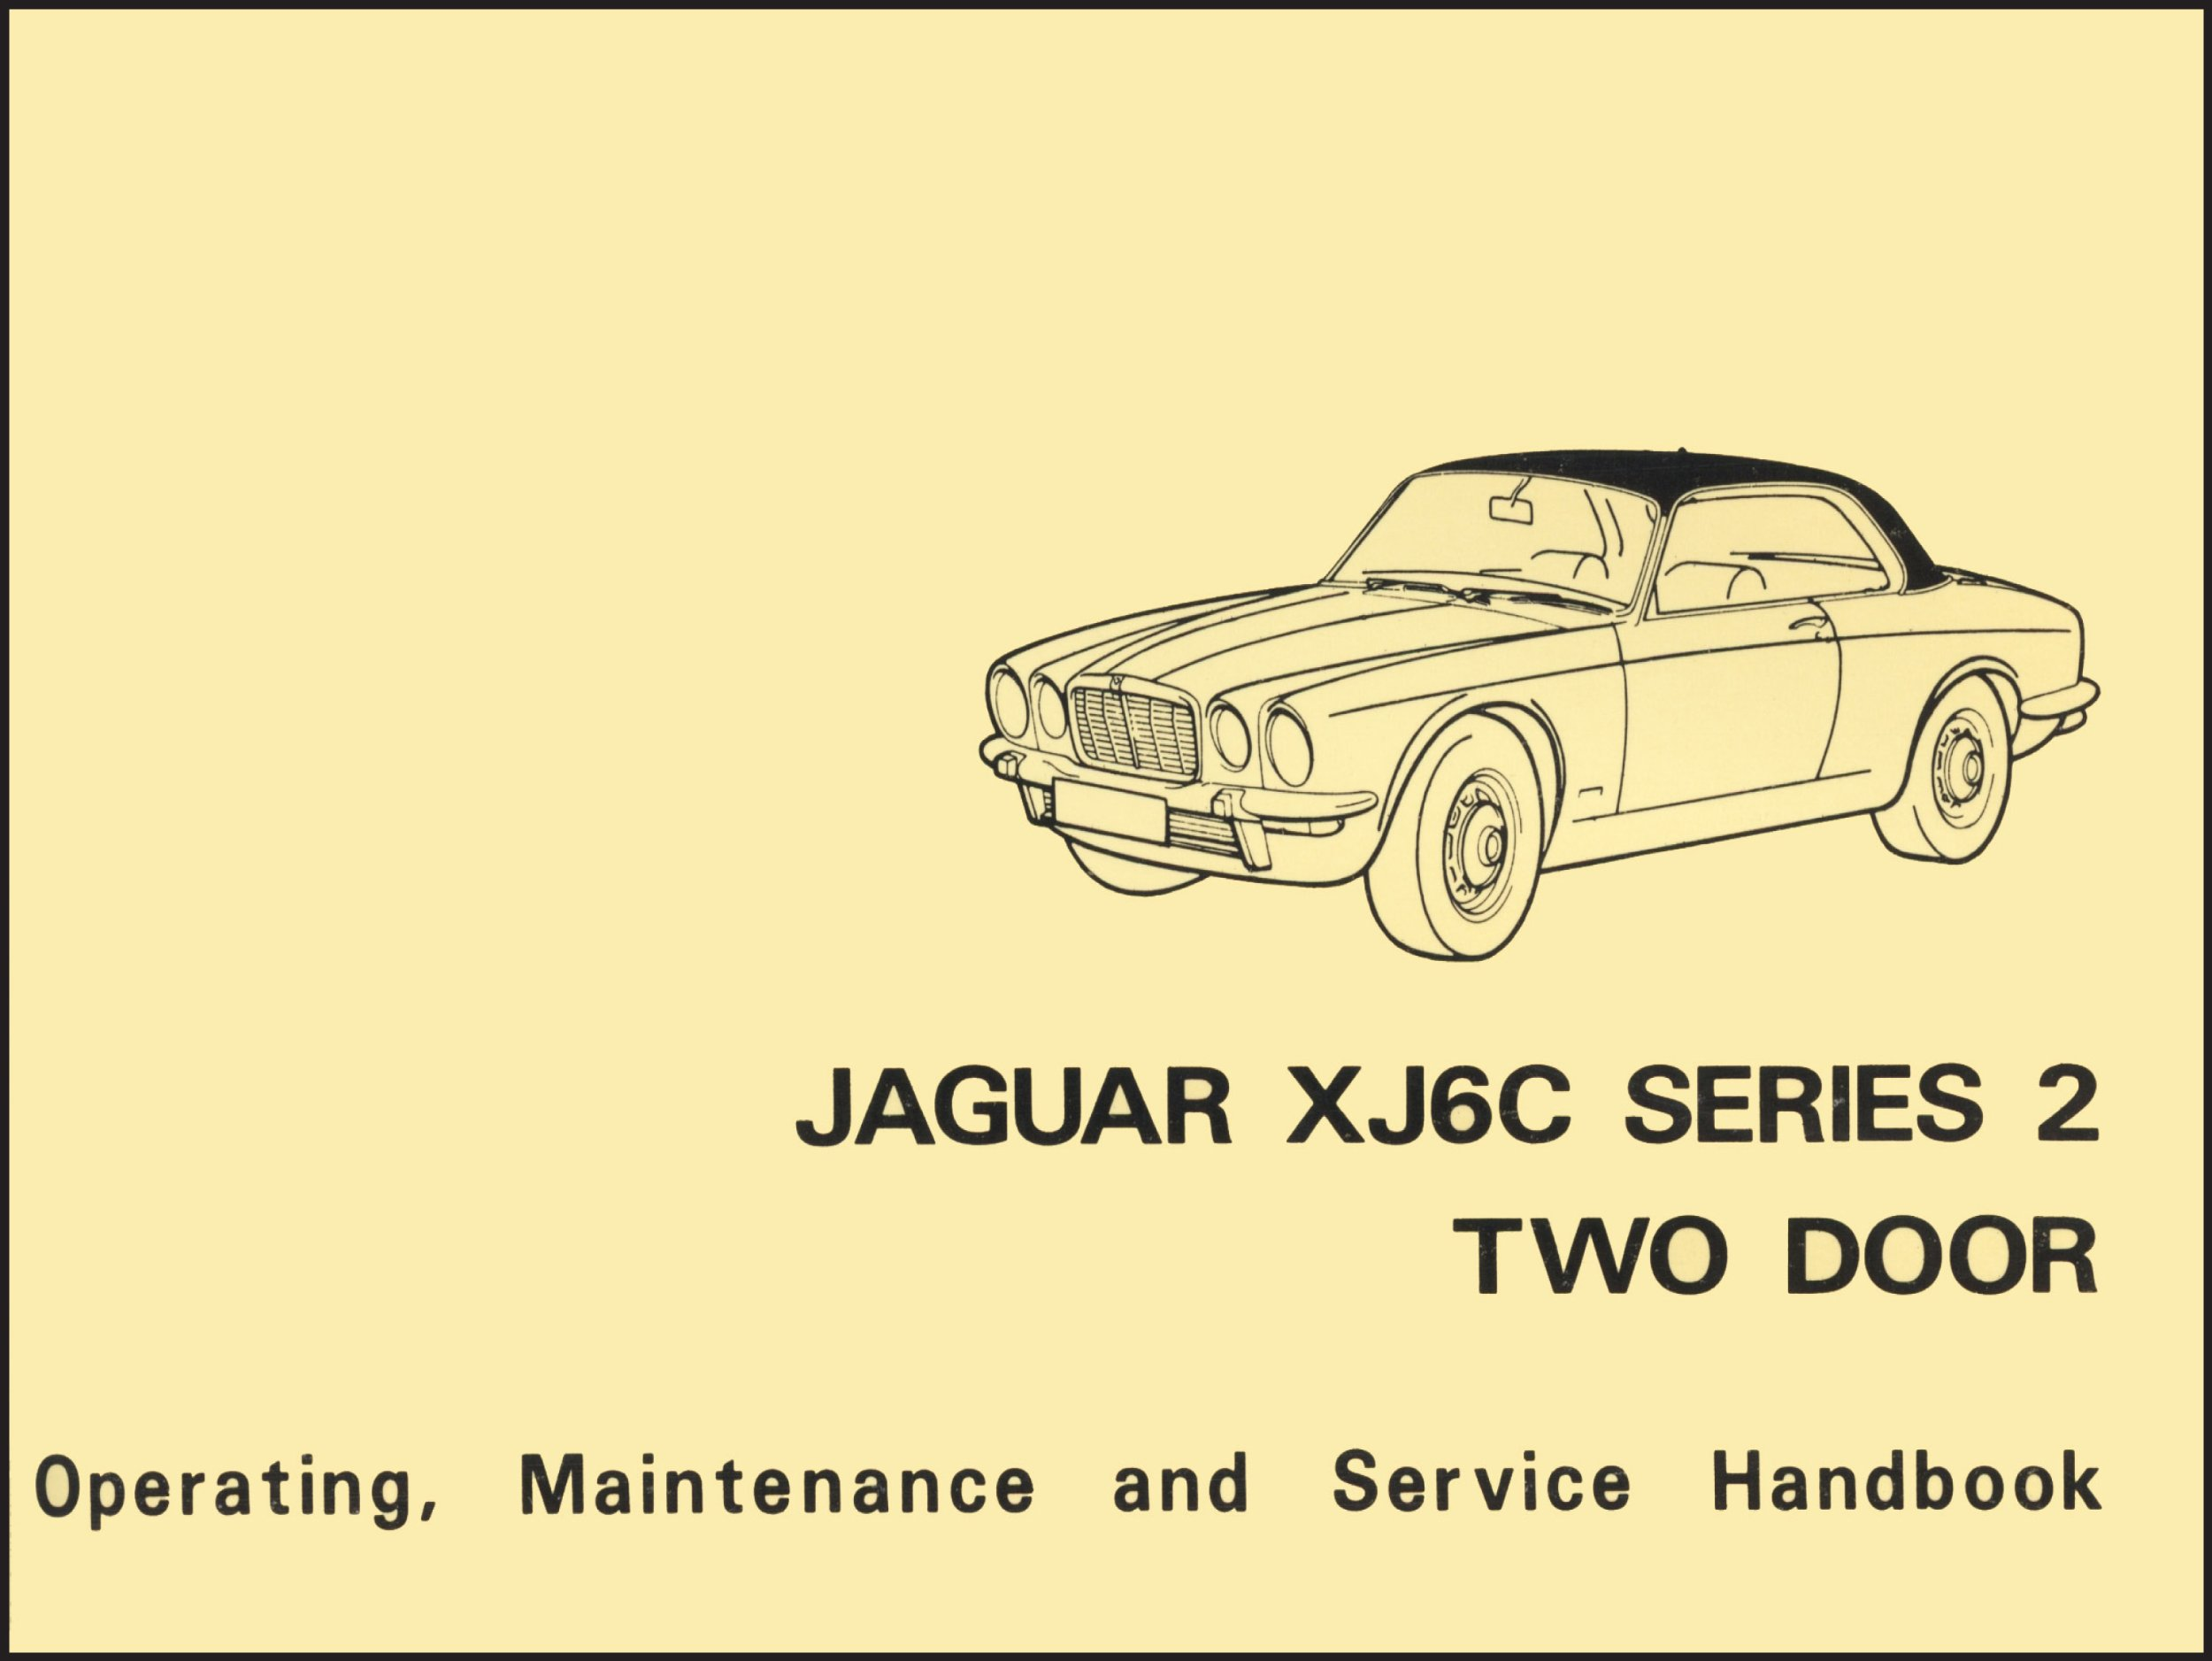 jaguar xj6c series 2 two door official handbook e184/1: general data - care  and maintenance instructions - wiring diagrams paperback – january 1, 2006